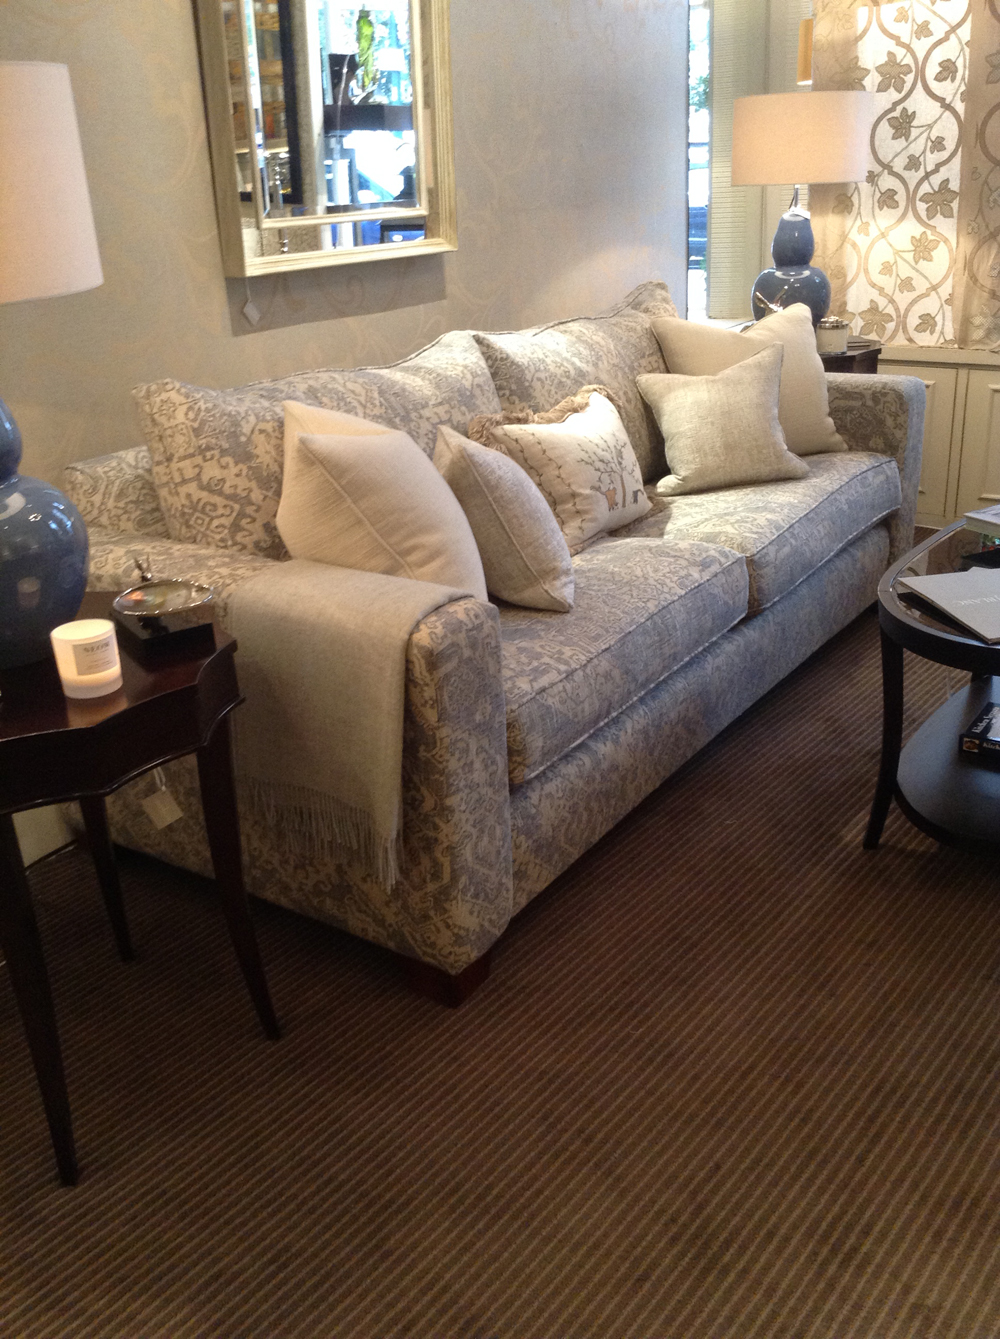 Try out the furniture with the showroom team's helpful guidance to find just the right piece. This is the luxurious Jenny Blanc Grand sofa